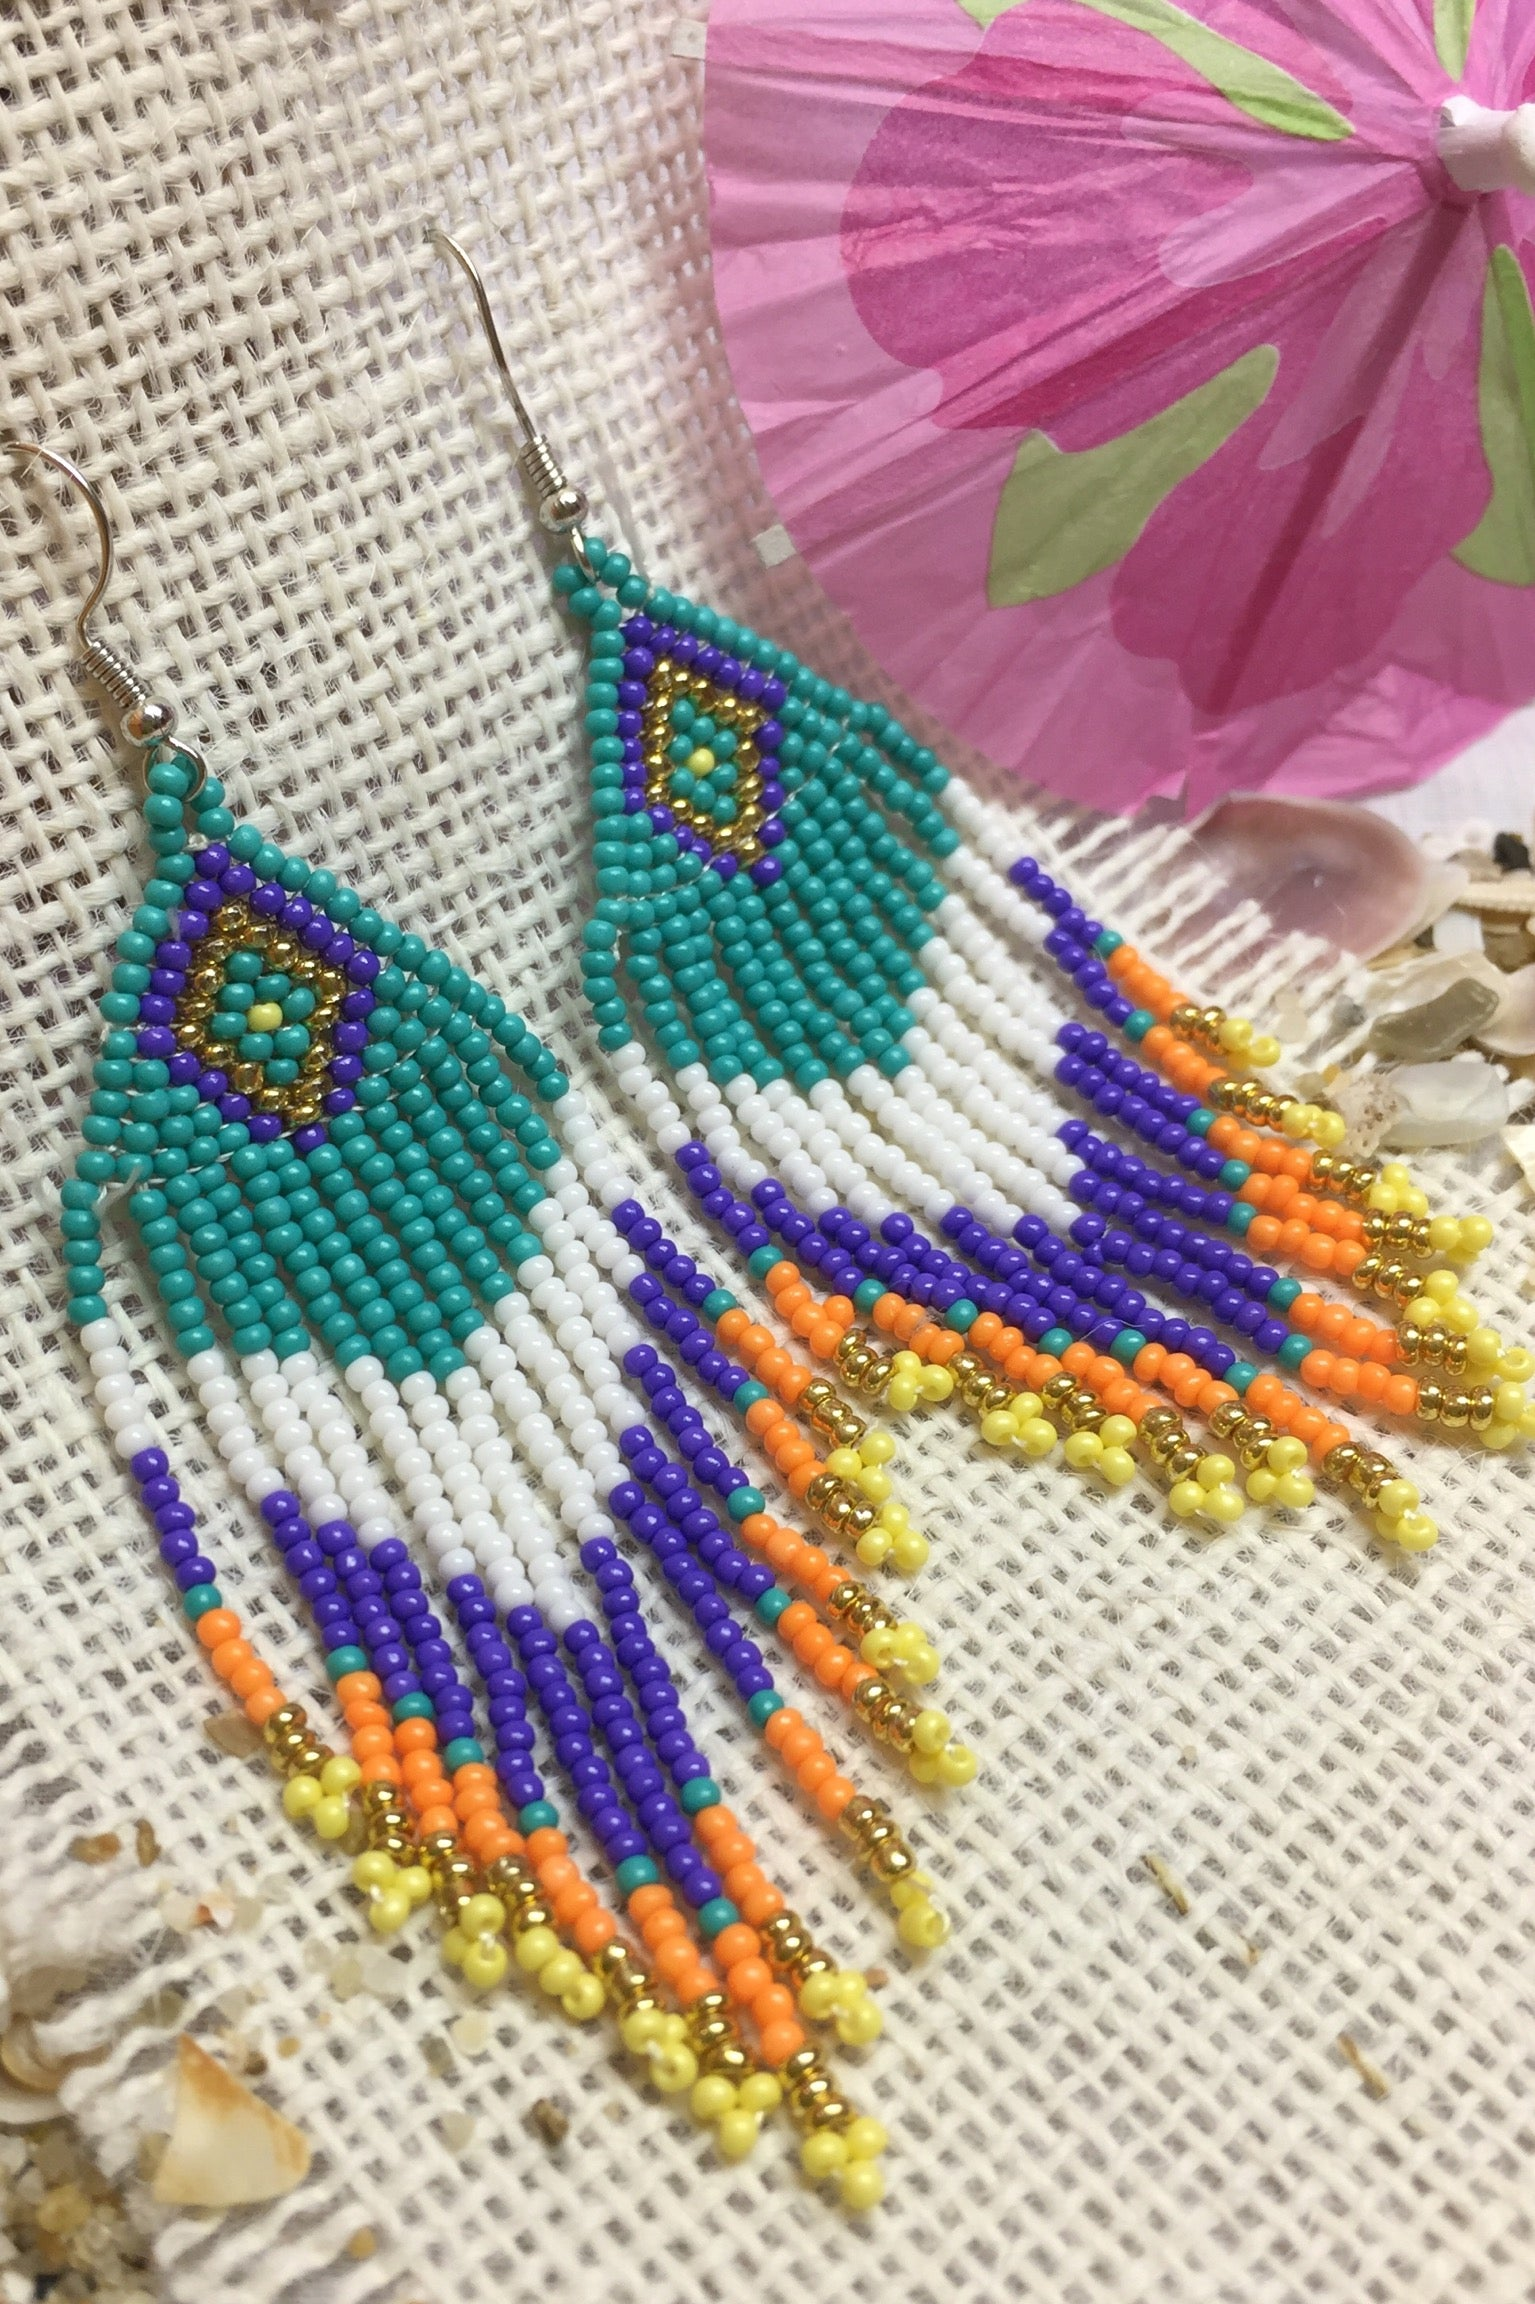 Earrings Rainbow Boho Seeds Tassels in Teal, seed bead tassel earrings, teal purple and white earrings, festival style jewellery, tassel earrings